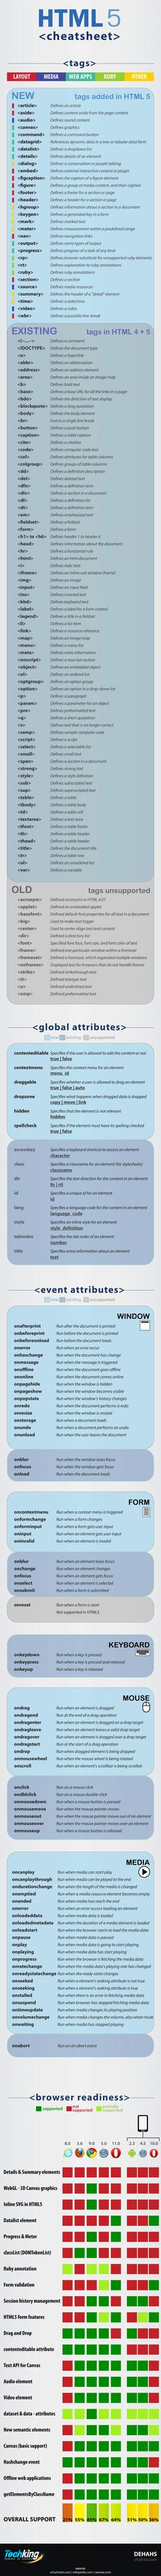 ultimate HTML5 reference guide http://immortal-technologies.com/website-design.html #WEBDESIGN #WEBSITEDESIGN